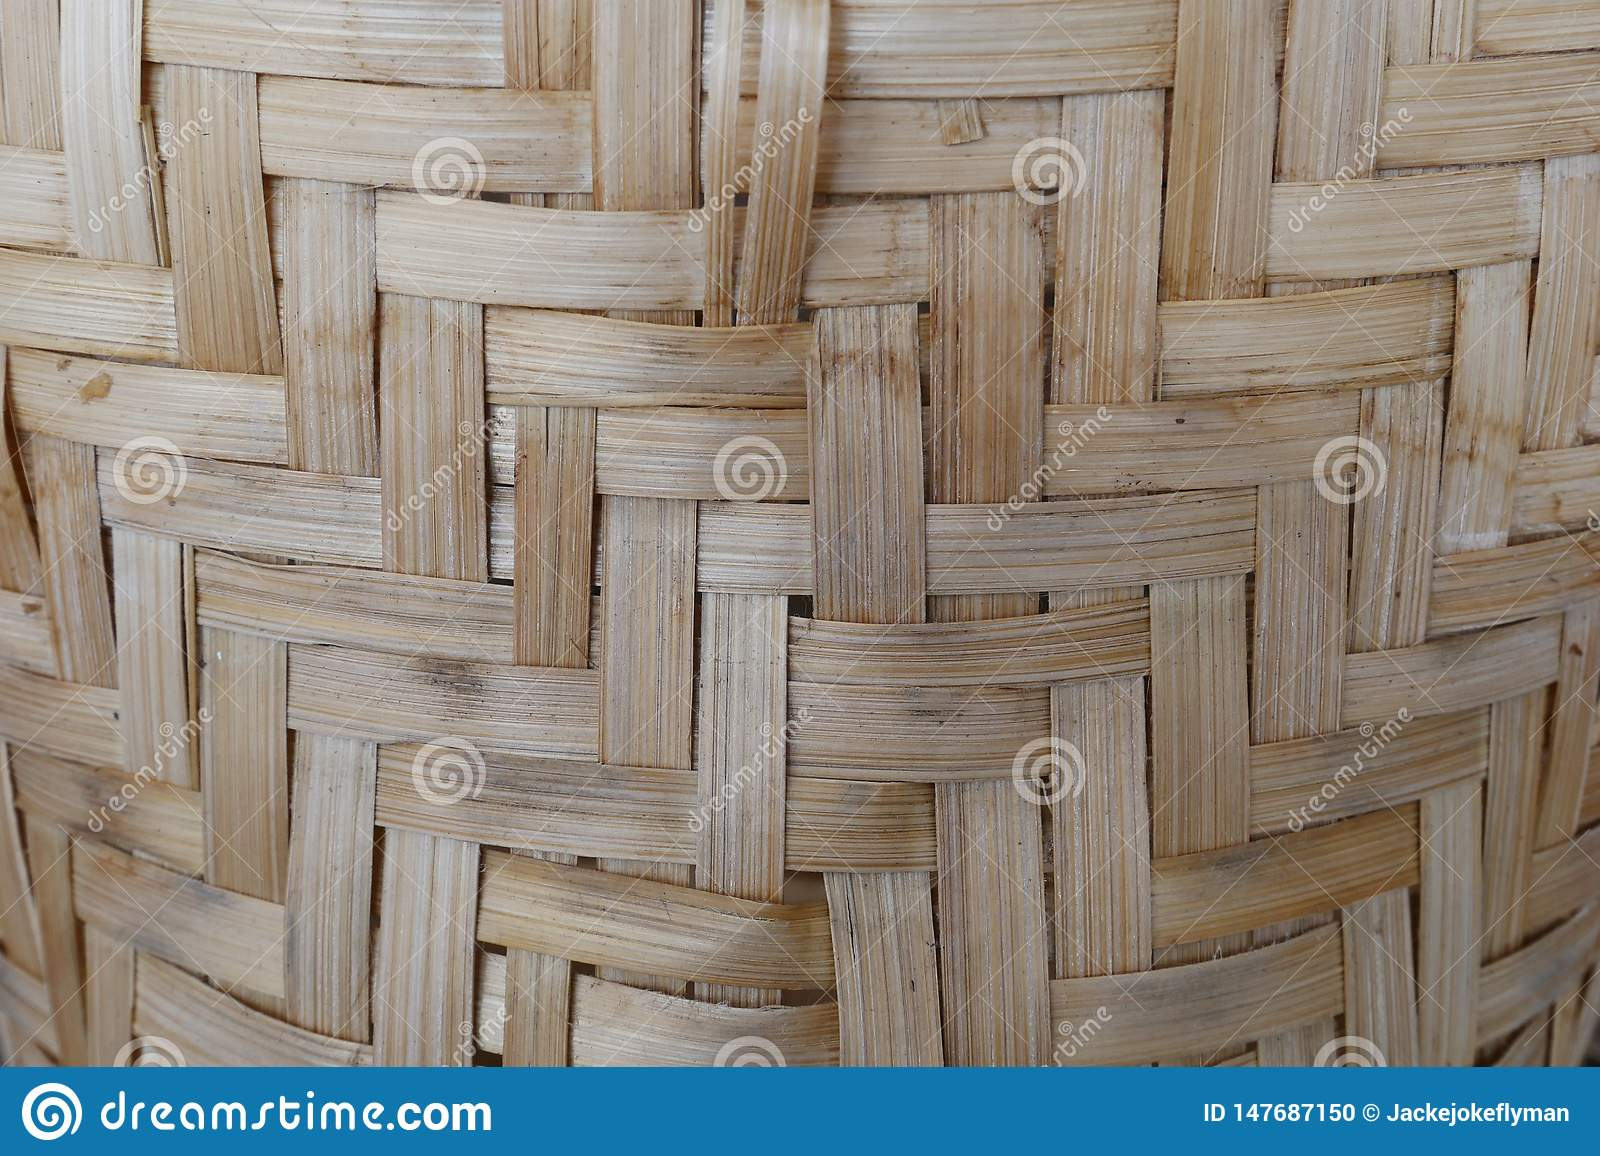 Bamboo or straw weaving. wooden Basket texture background